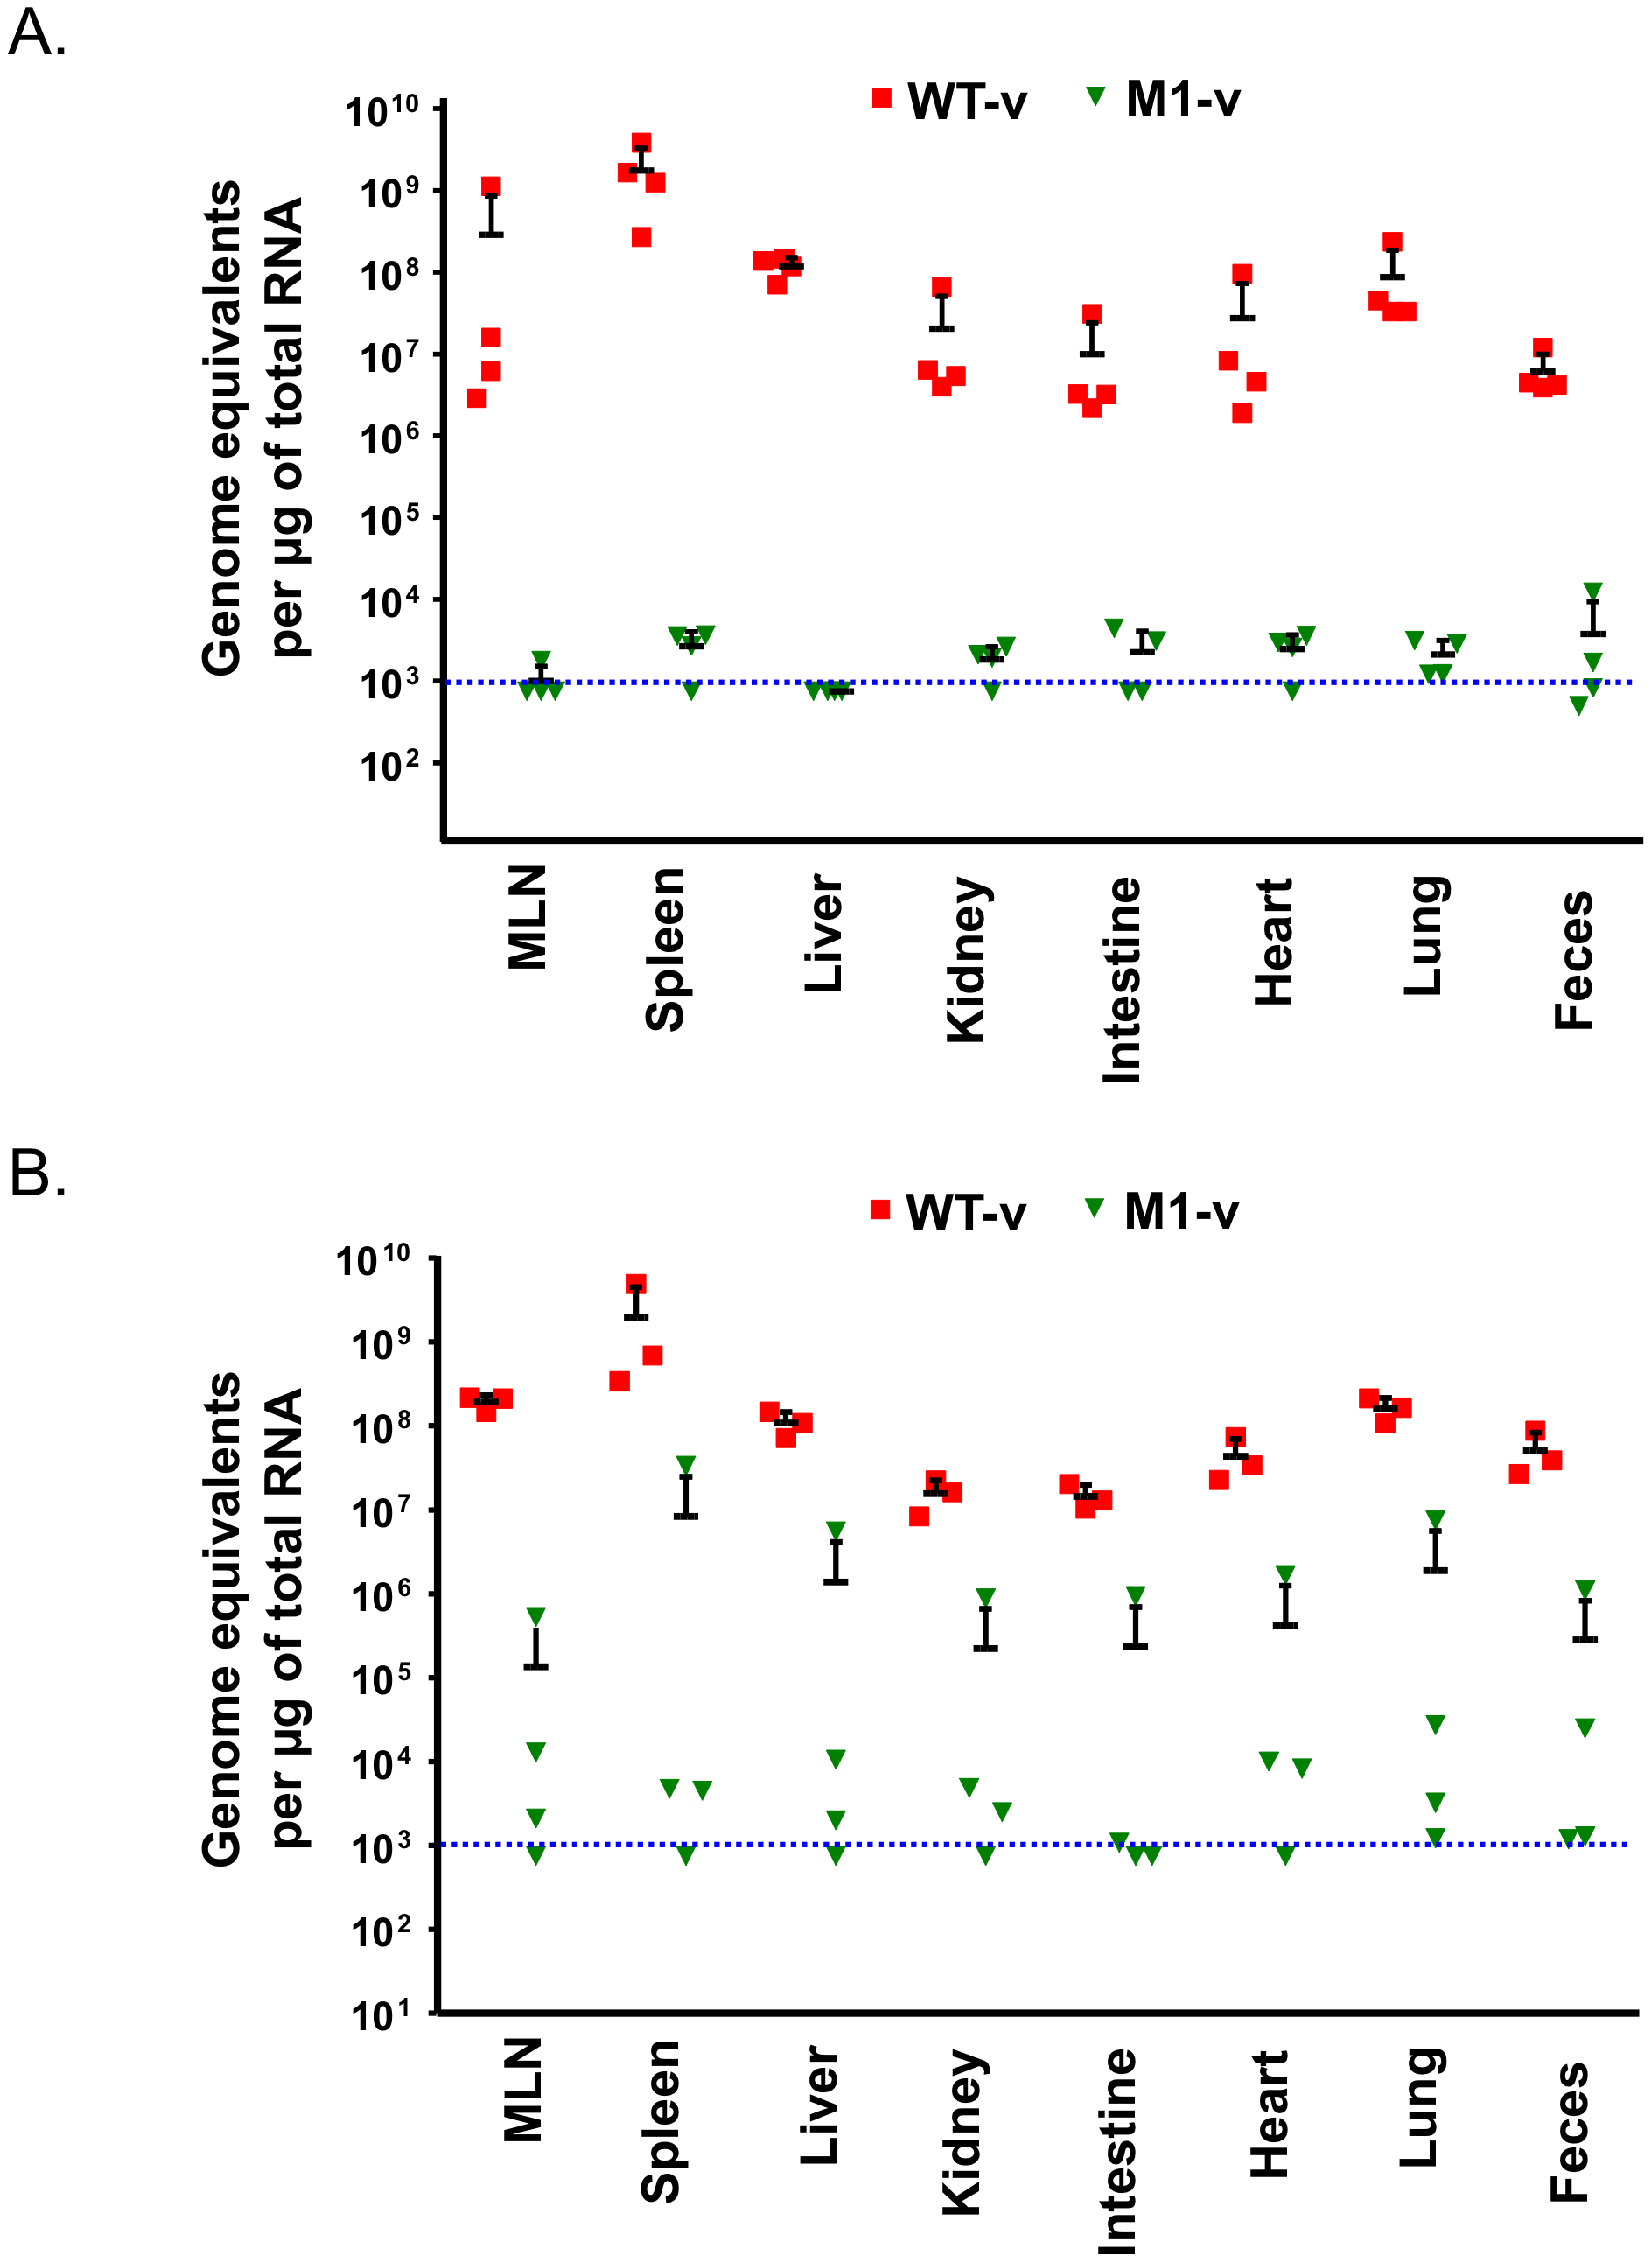 Viral RNA replication <i>in vivo</i> is reduced as a result of the loss of VF1 expression.